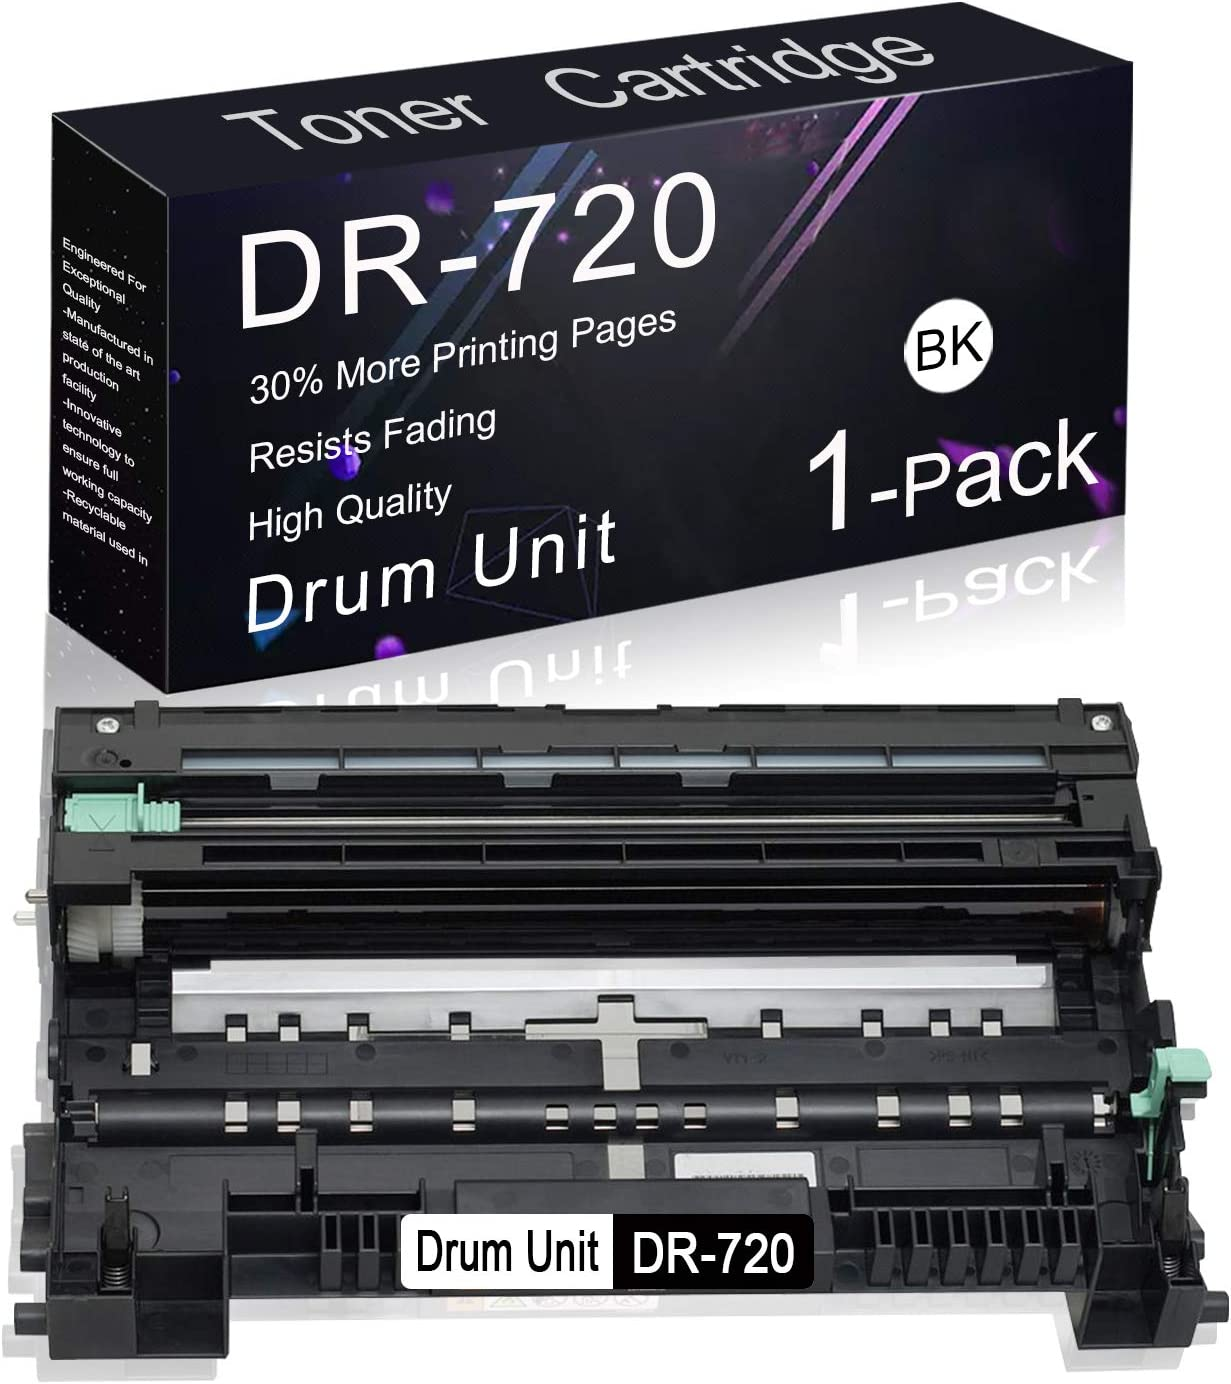 Compatible Drum Cartridge 1 Award Sale special price Pack for Replacement Black DR-720 Br